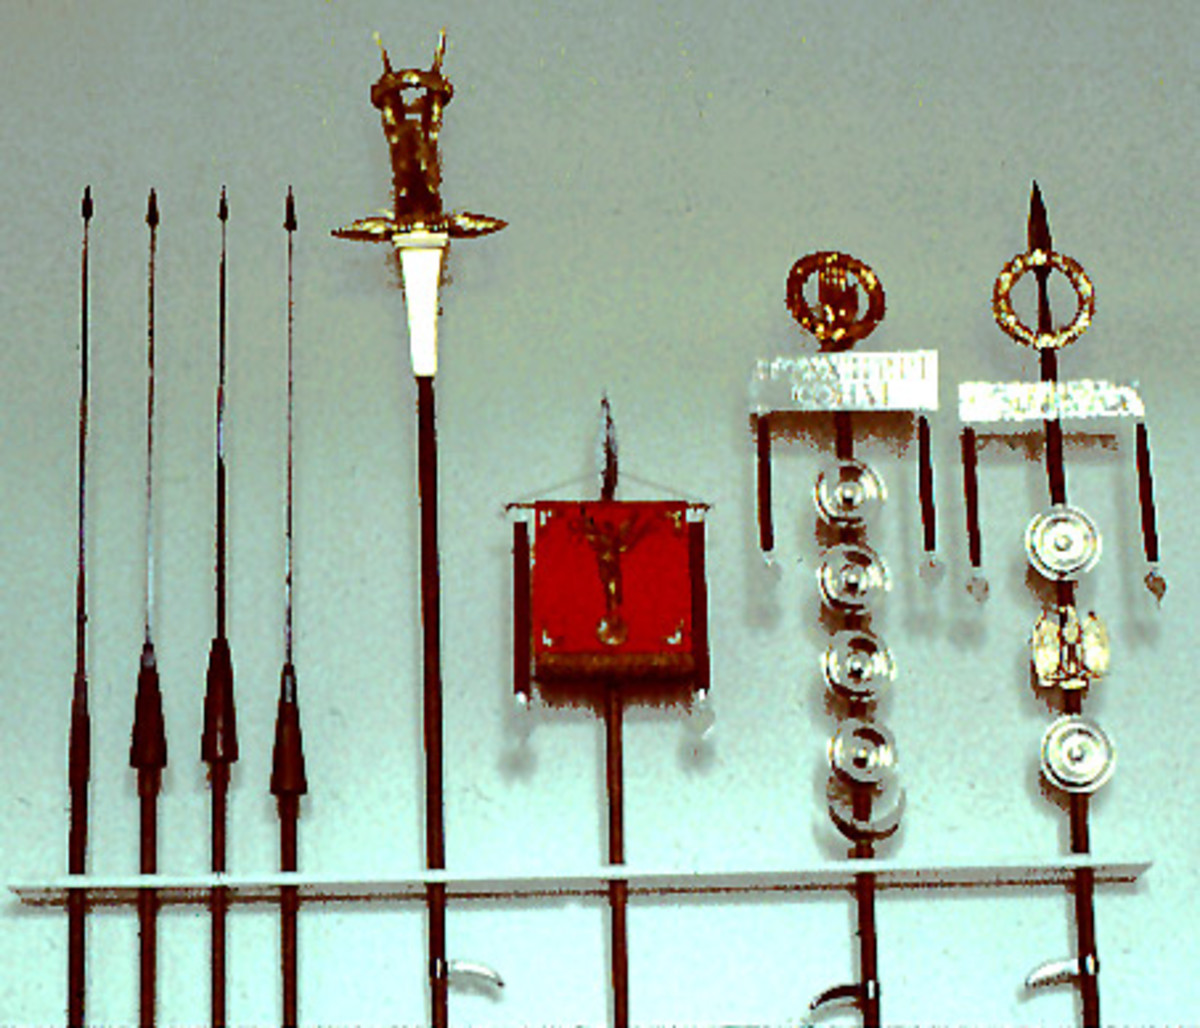 roman-weaponry-legionaries-centurions-weapons-swords-daggers-spears-flails